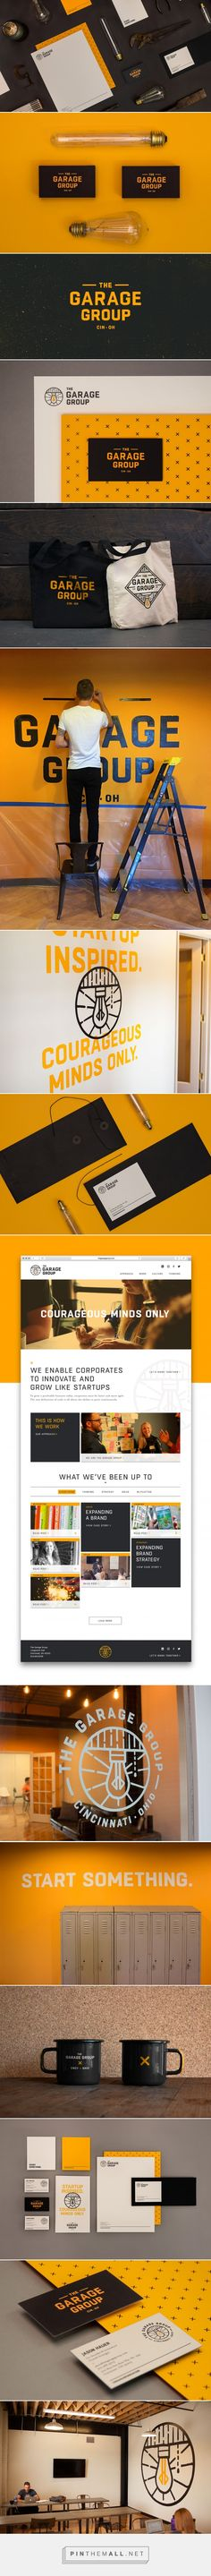 The Garage Group Branding by Hyperquake, LLC | Fivestar Branding Agency – Design and Branding Agency & Curated Inspiration Gallery